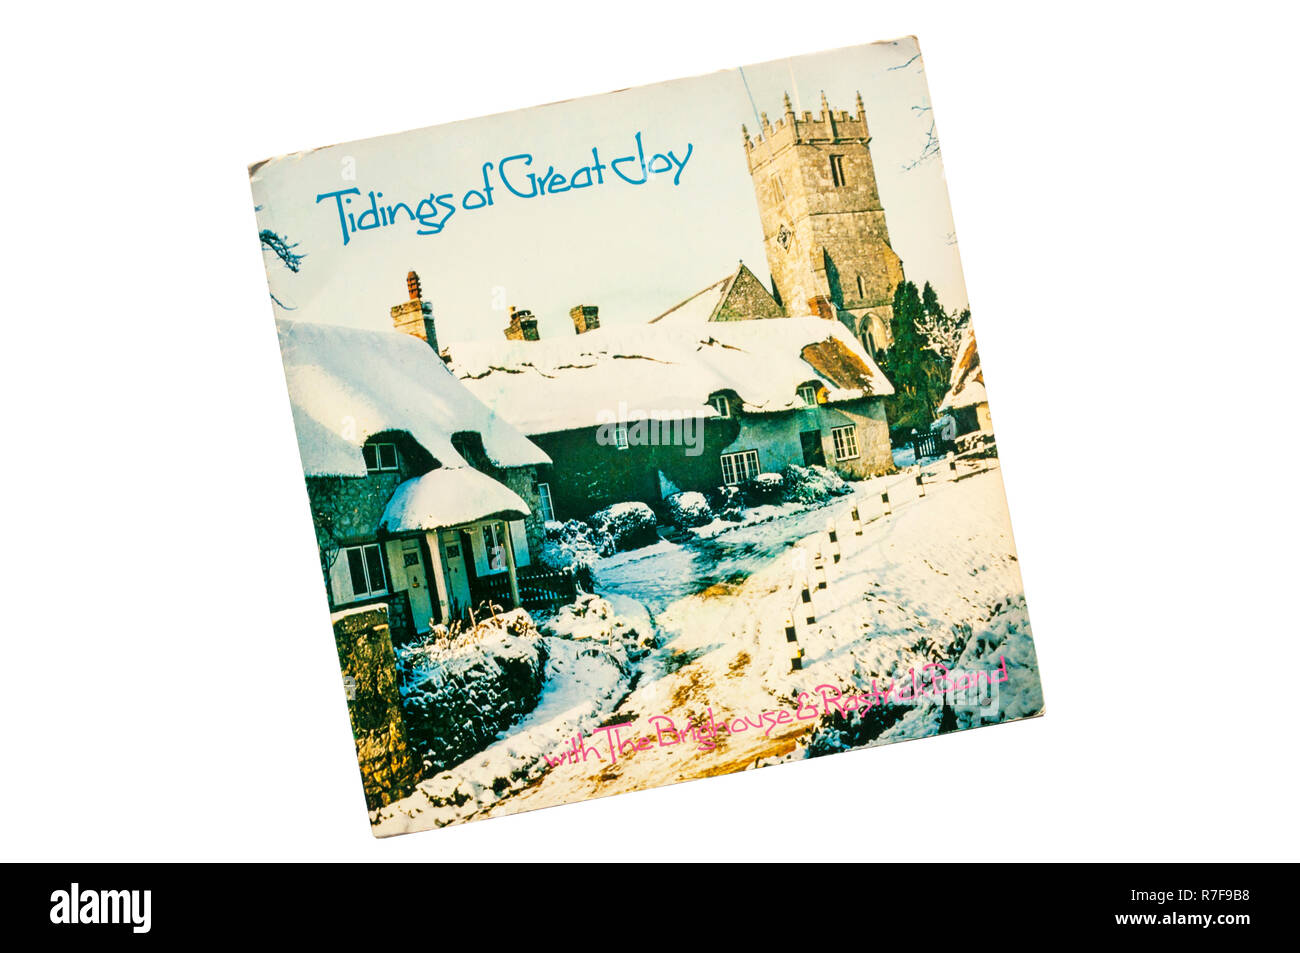 "1978 7"" Christmas single, Tidings of Great Joy by the Brighouse And Rastrick Brass Band. Stock Photo"